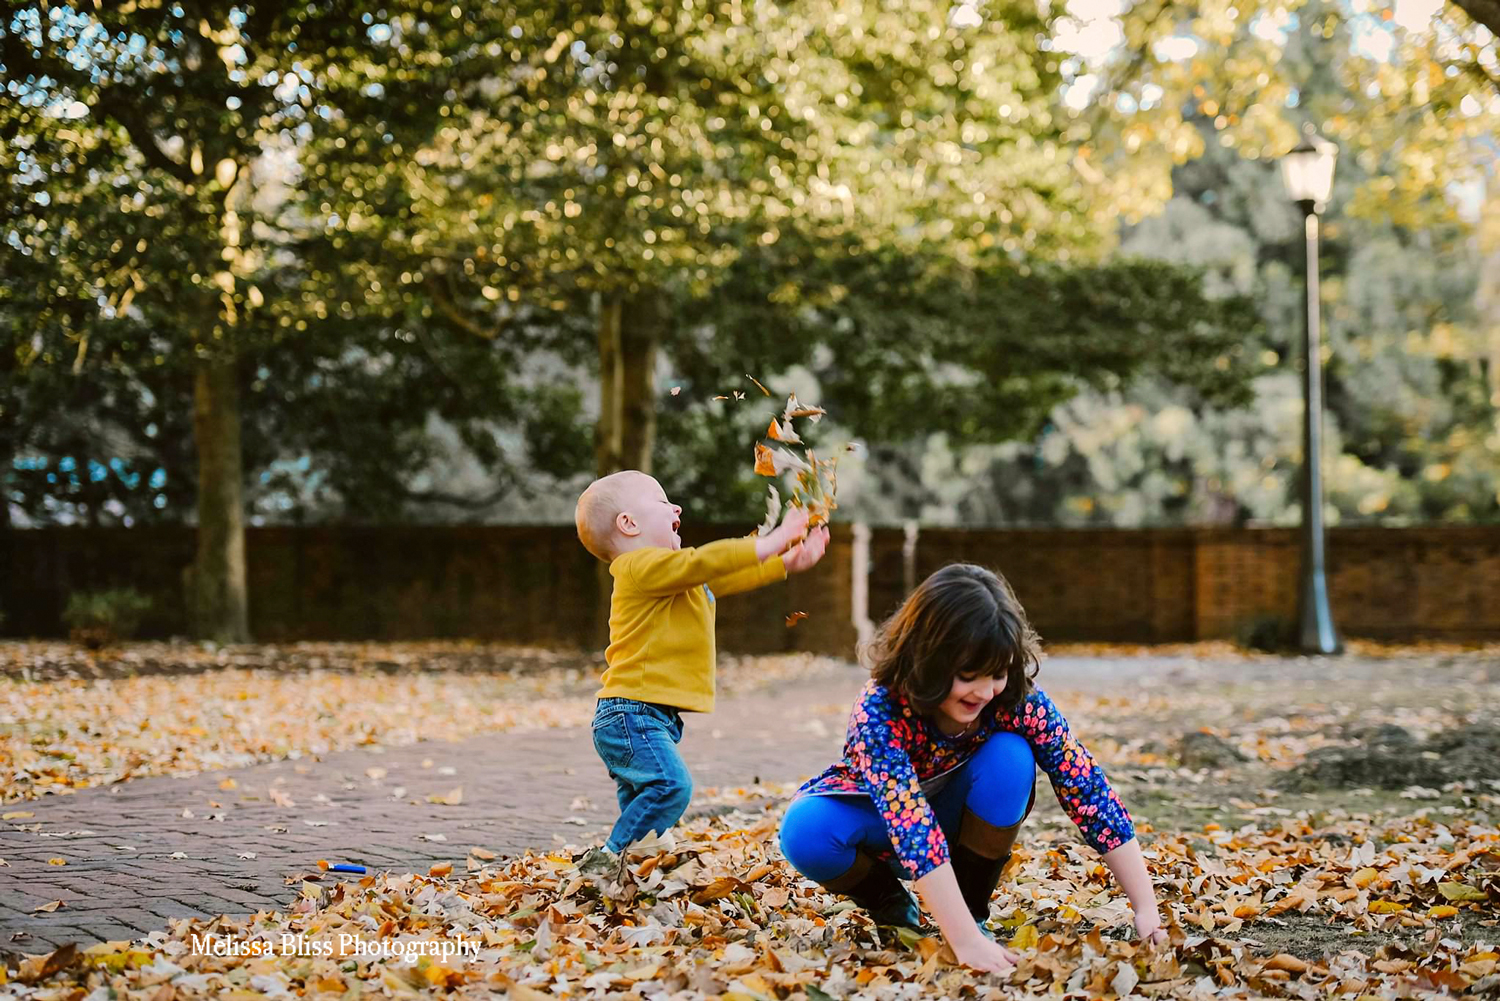 candid-fun-lifestyle-photos-children-playing-at-colonial-williamsburg-virginia-beach-photographer-melissa-bliss-photography.jpg